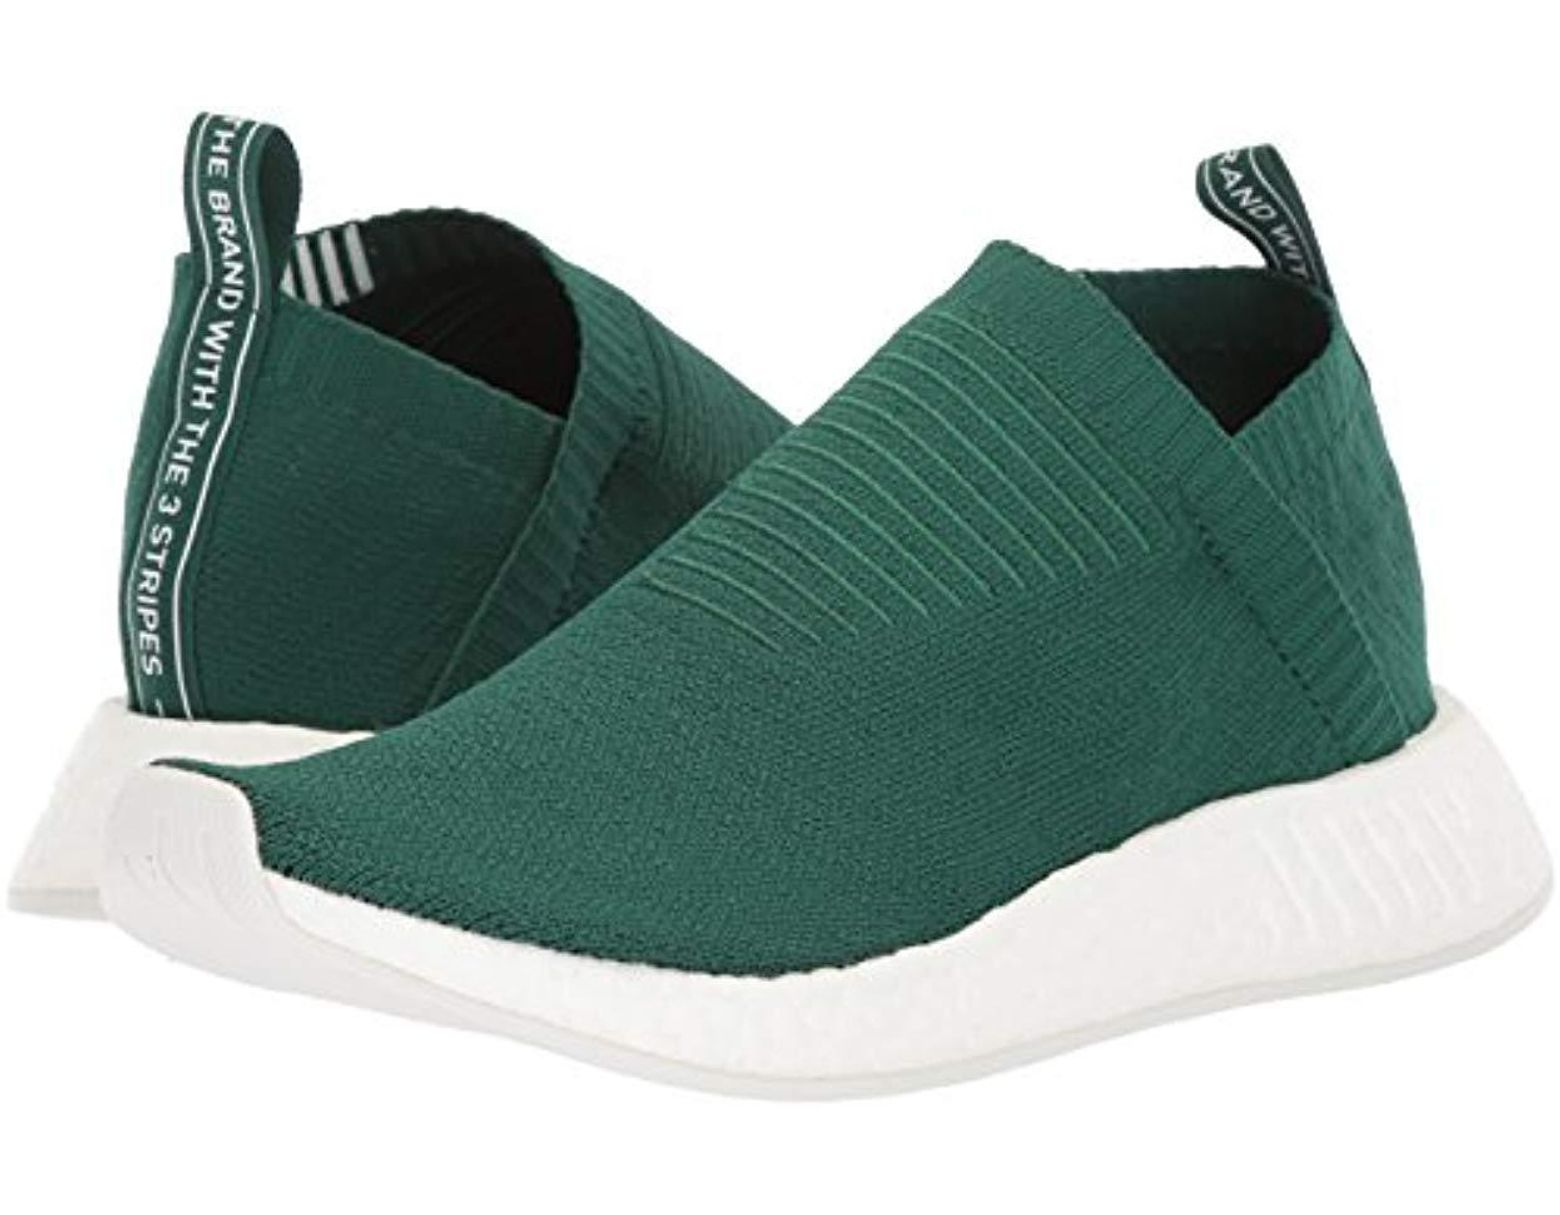 adidas Nmd Cs2 Pk Size 9.5 in Green for Men Lyst